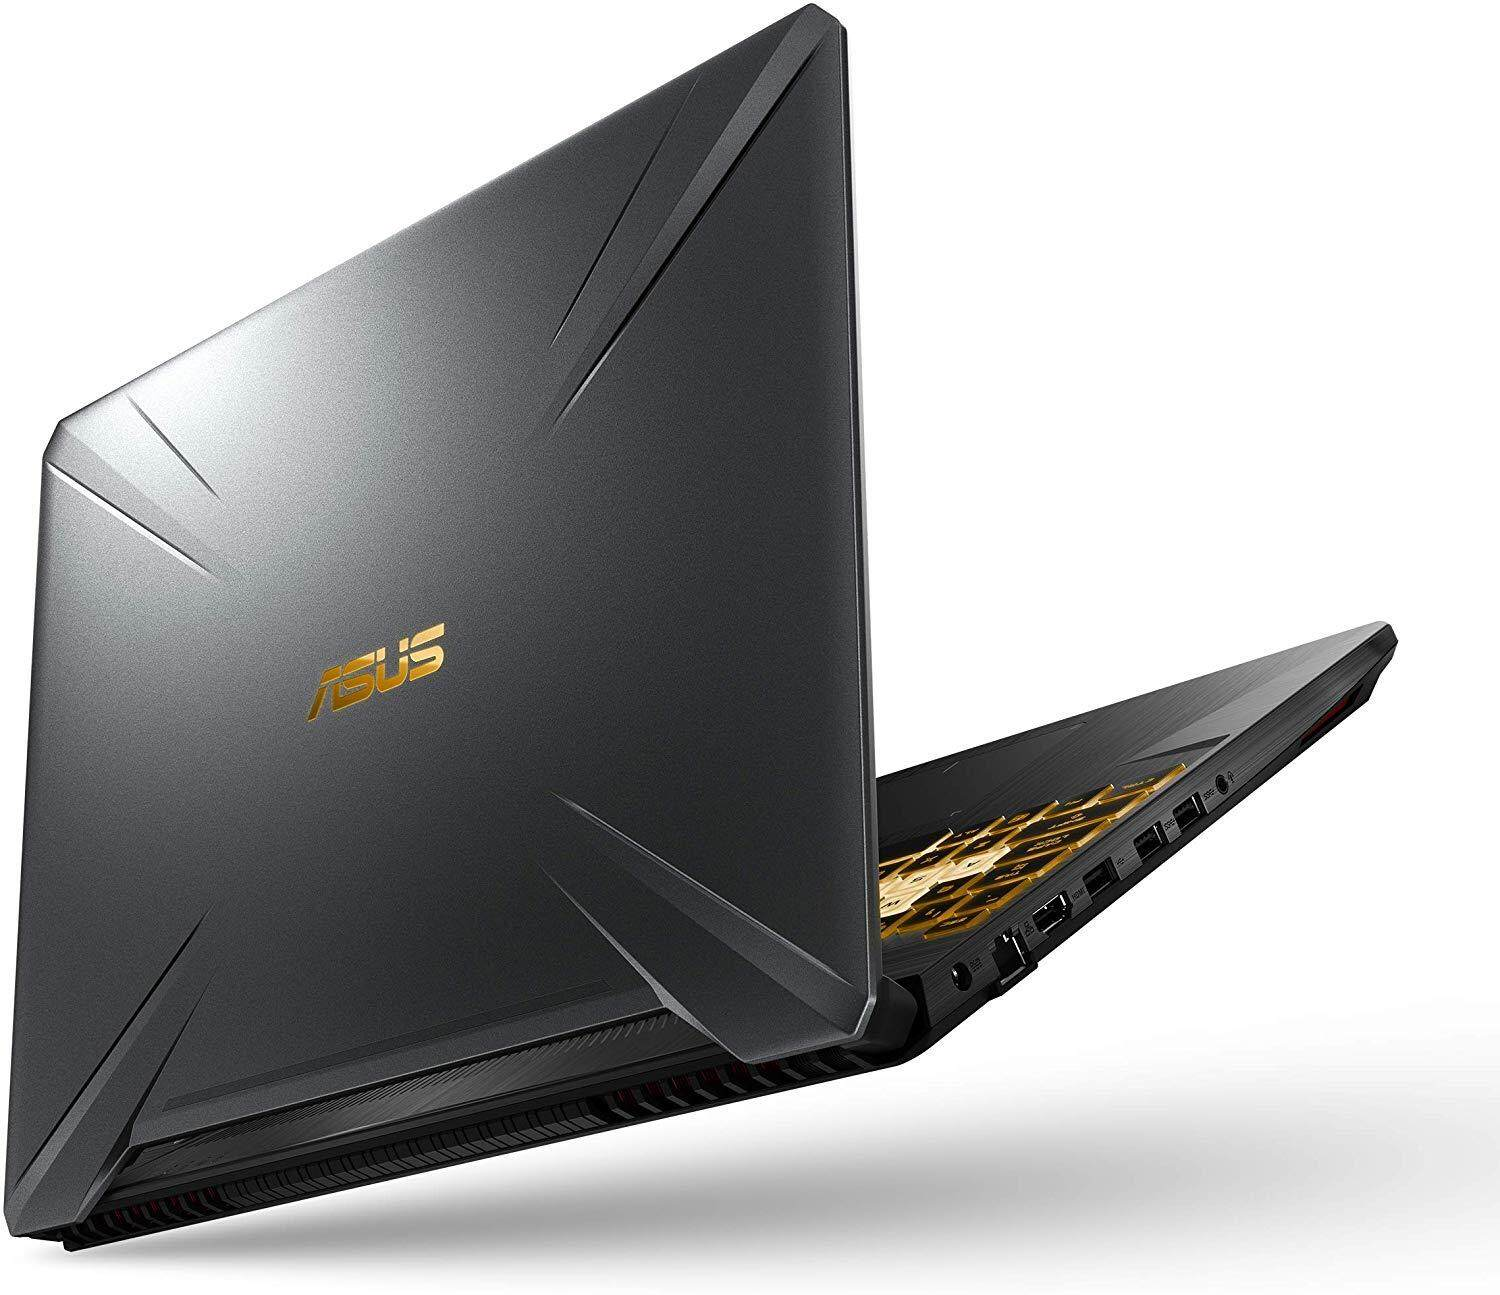 "ASUS TUF (2019) Gaming Laptop, 15.6"" 120Hz FHD IPS-Type, AMD Ryzen 7 R7-3750H, GeForce GTX 1660 Ti, 16GB DDR4, 256GB PCIe SSD + 1TB HDD, Gigabit Wi-Fi 5, RGB KB, Windows 10 Home Malaysia"